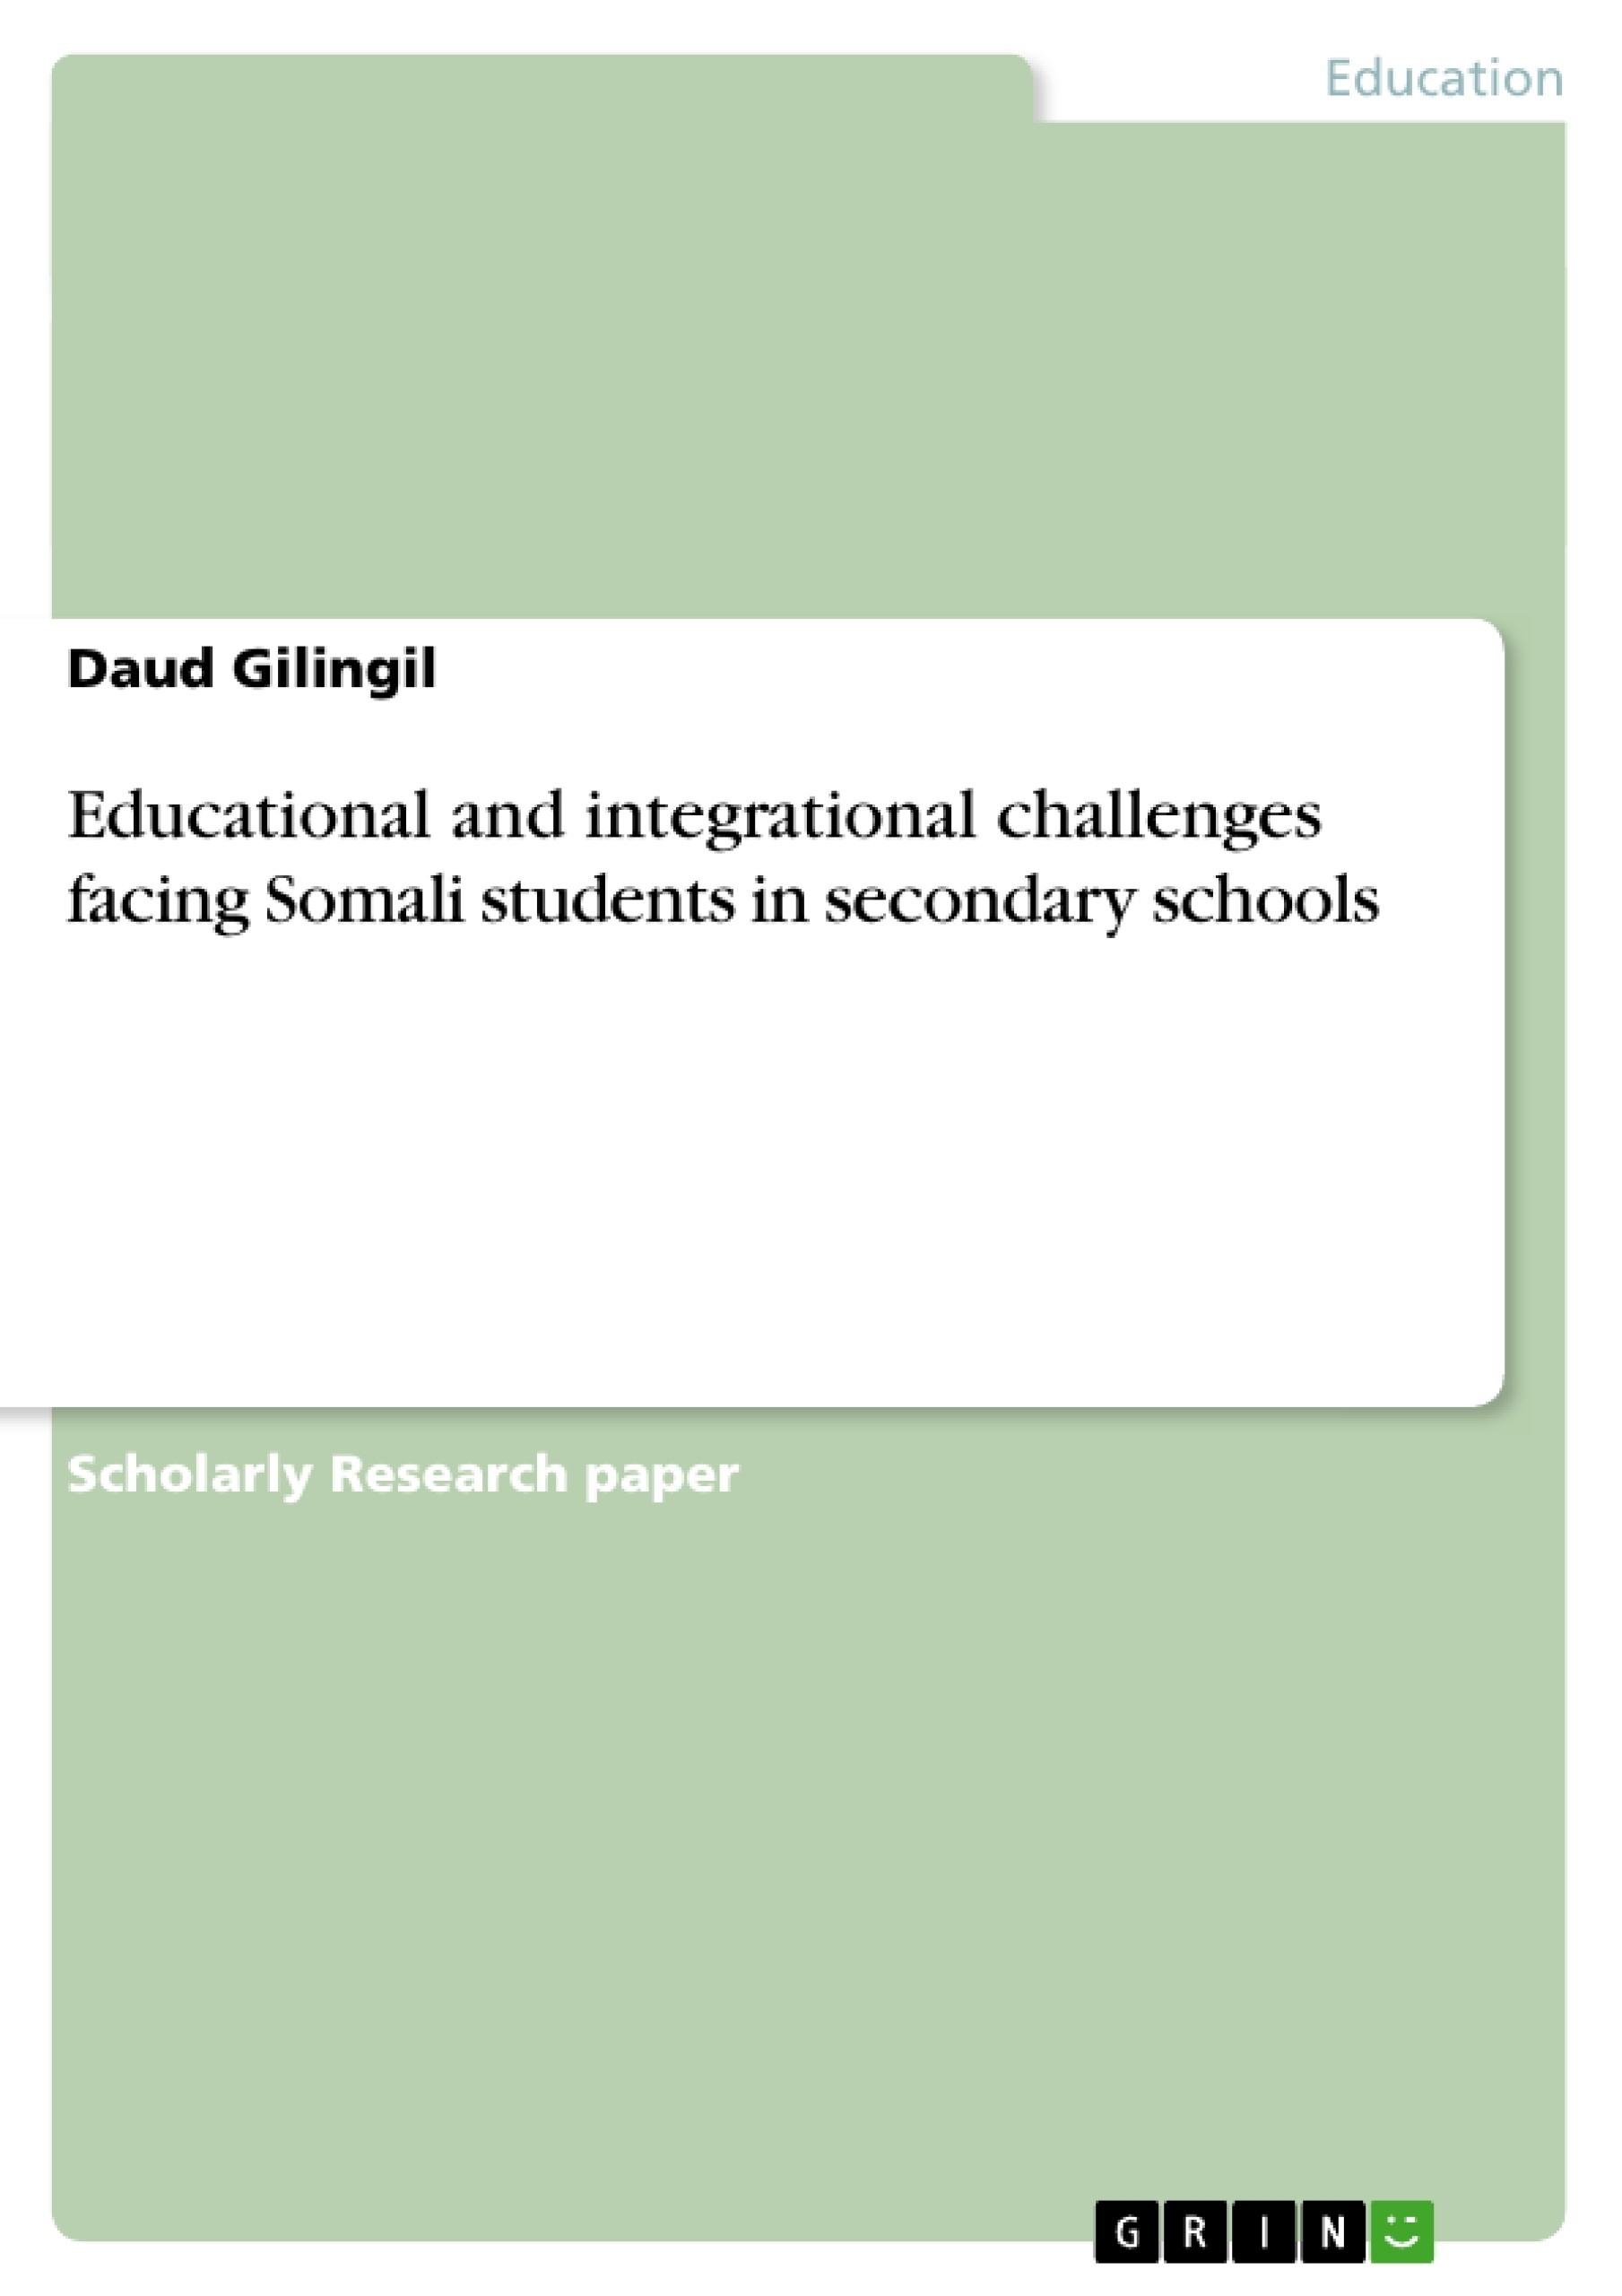 Title: Educational and integrational challenges facing Somali students in secondary schools